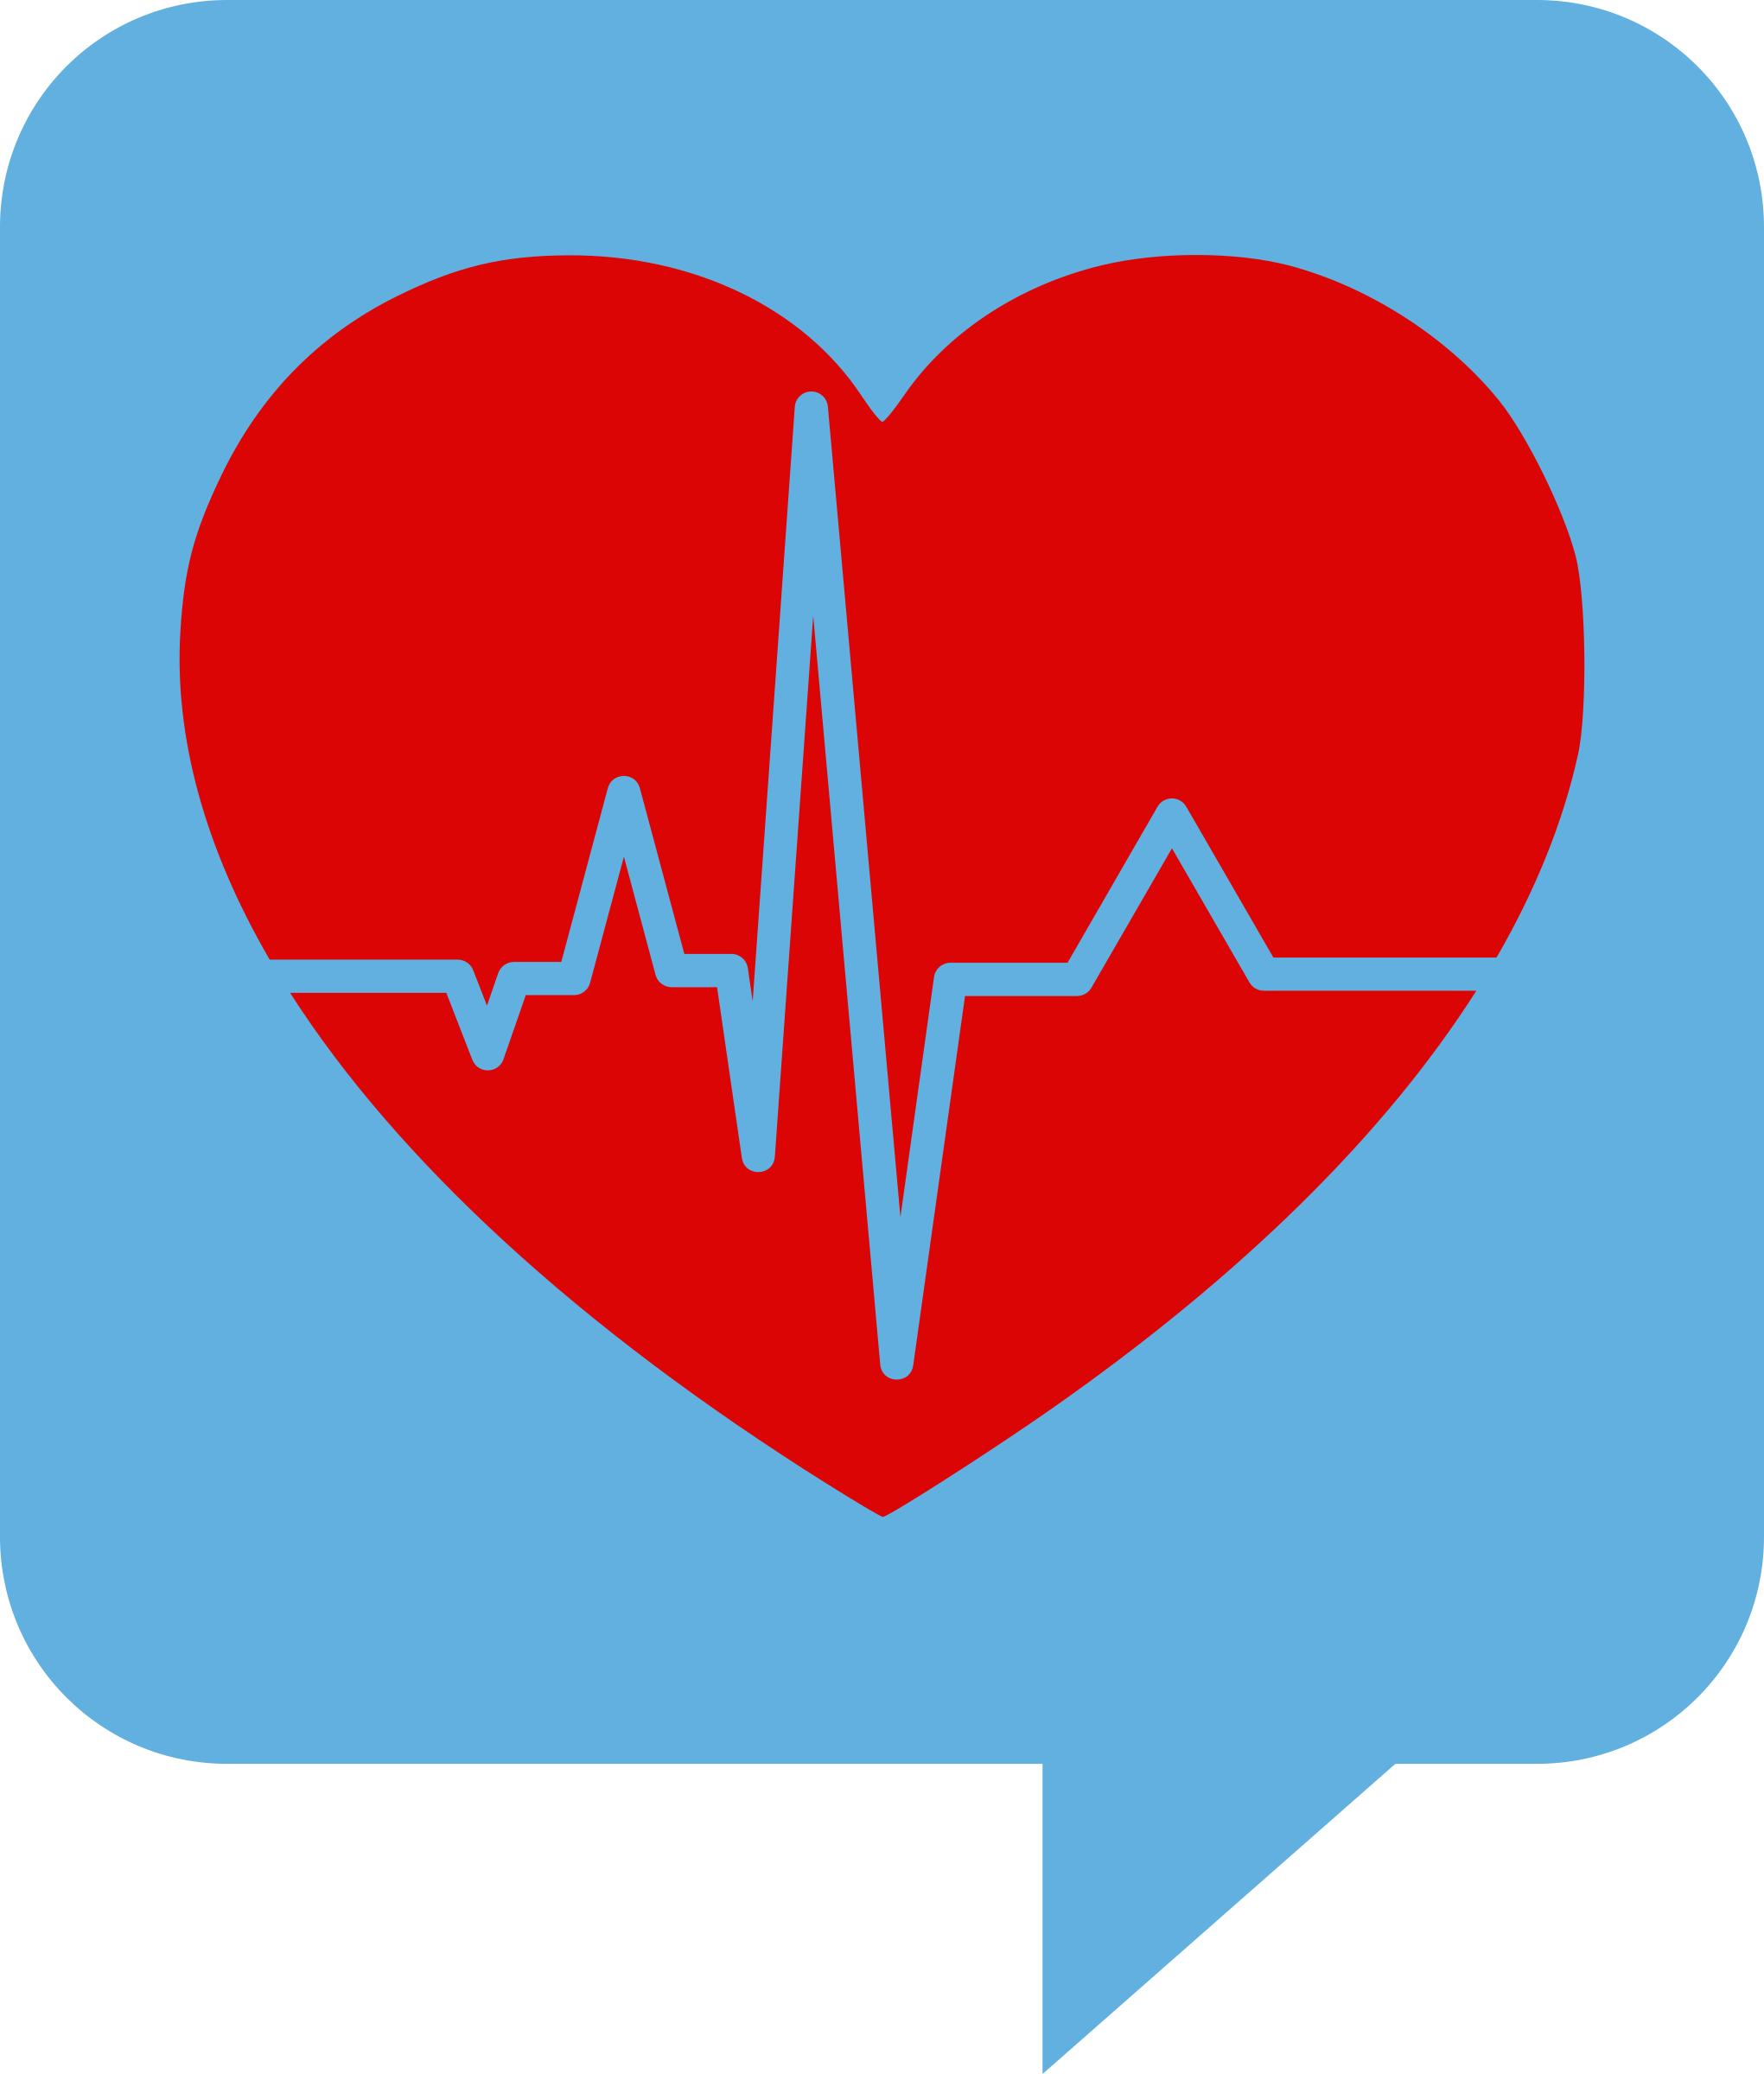 Heartbeat logo for health clipart cliparts and others art